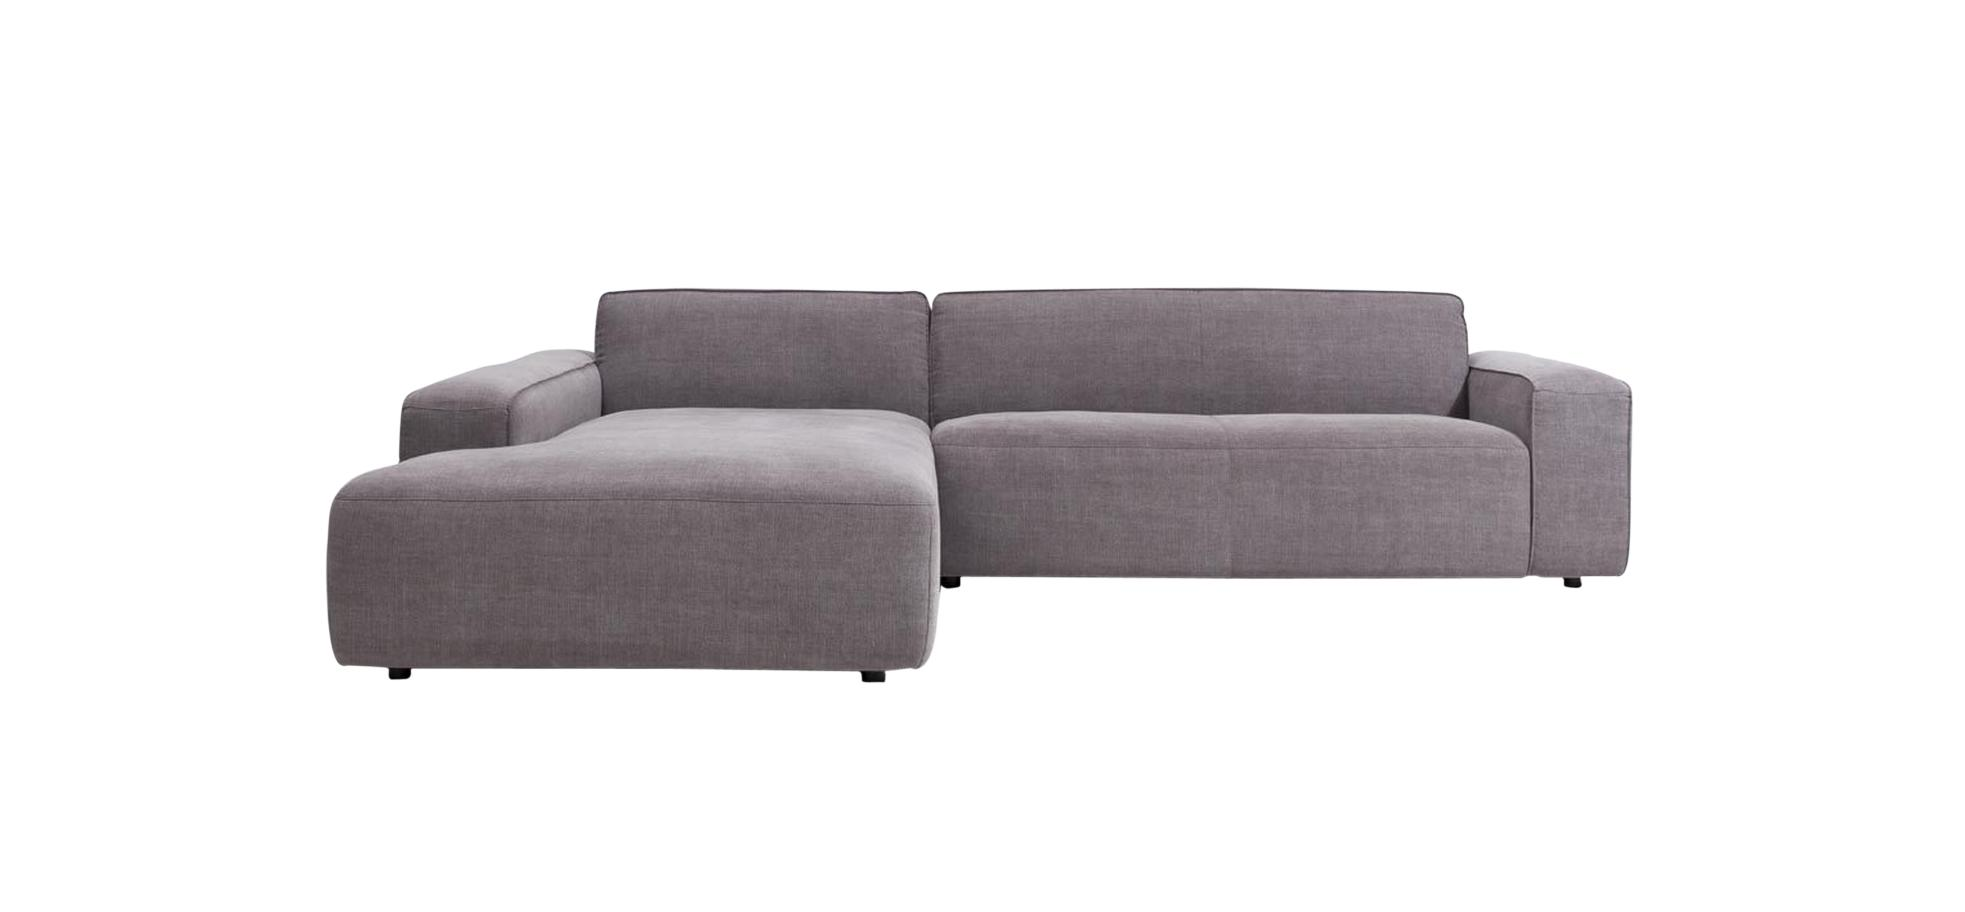 Full Size of Natura Sofa Love Couch Newport Denver Brooklyn Gebraucht Livingston Kansas Home Pasadena Kaufen Polsterecke Krause Company Chippendale Polster Zweisitzer Sofa Natura Sofa